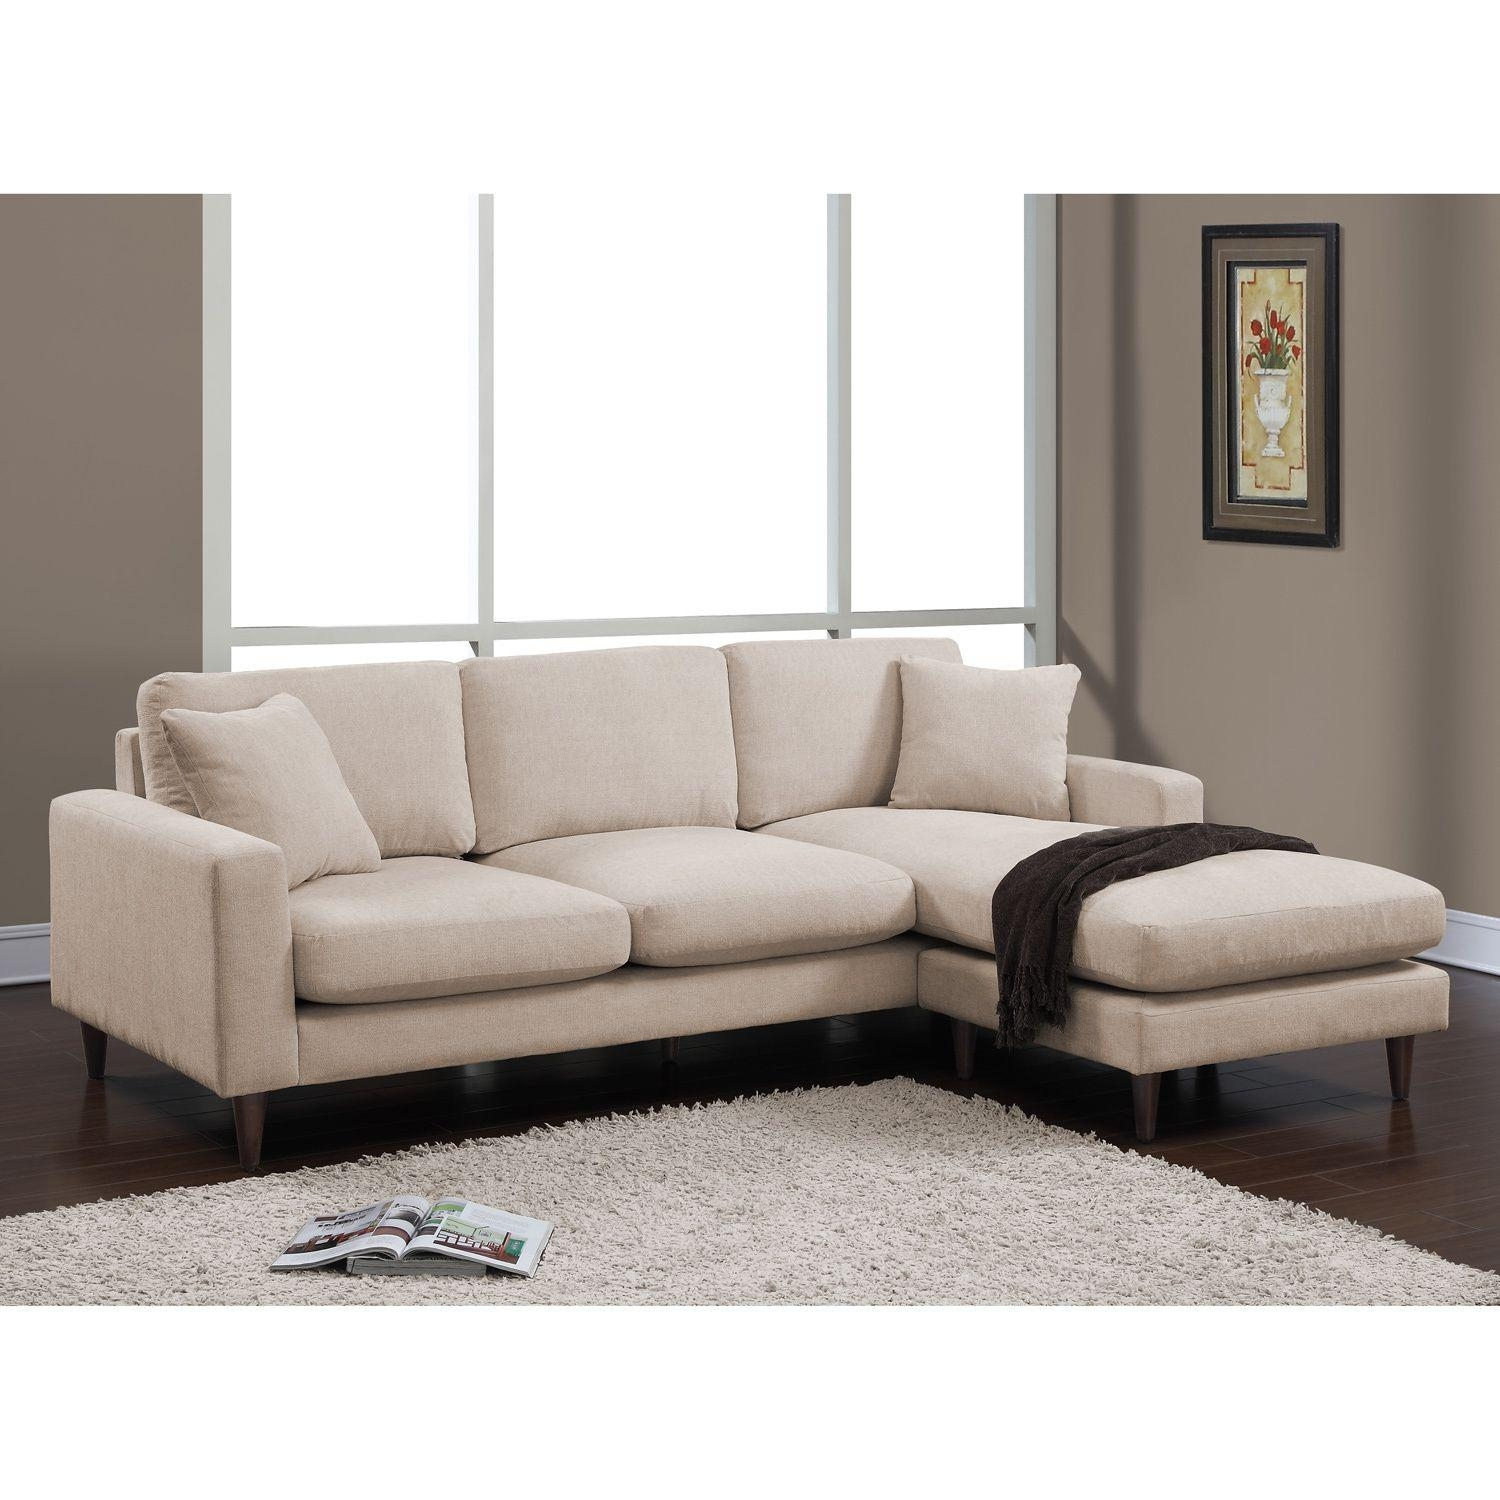 Sofas Center : Down Sectional Sofa Img 3386 Jpg Feather Asheville Throughout Down Filled Sofa Sectional (View 9 of 15)